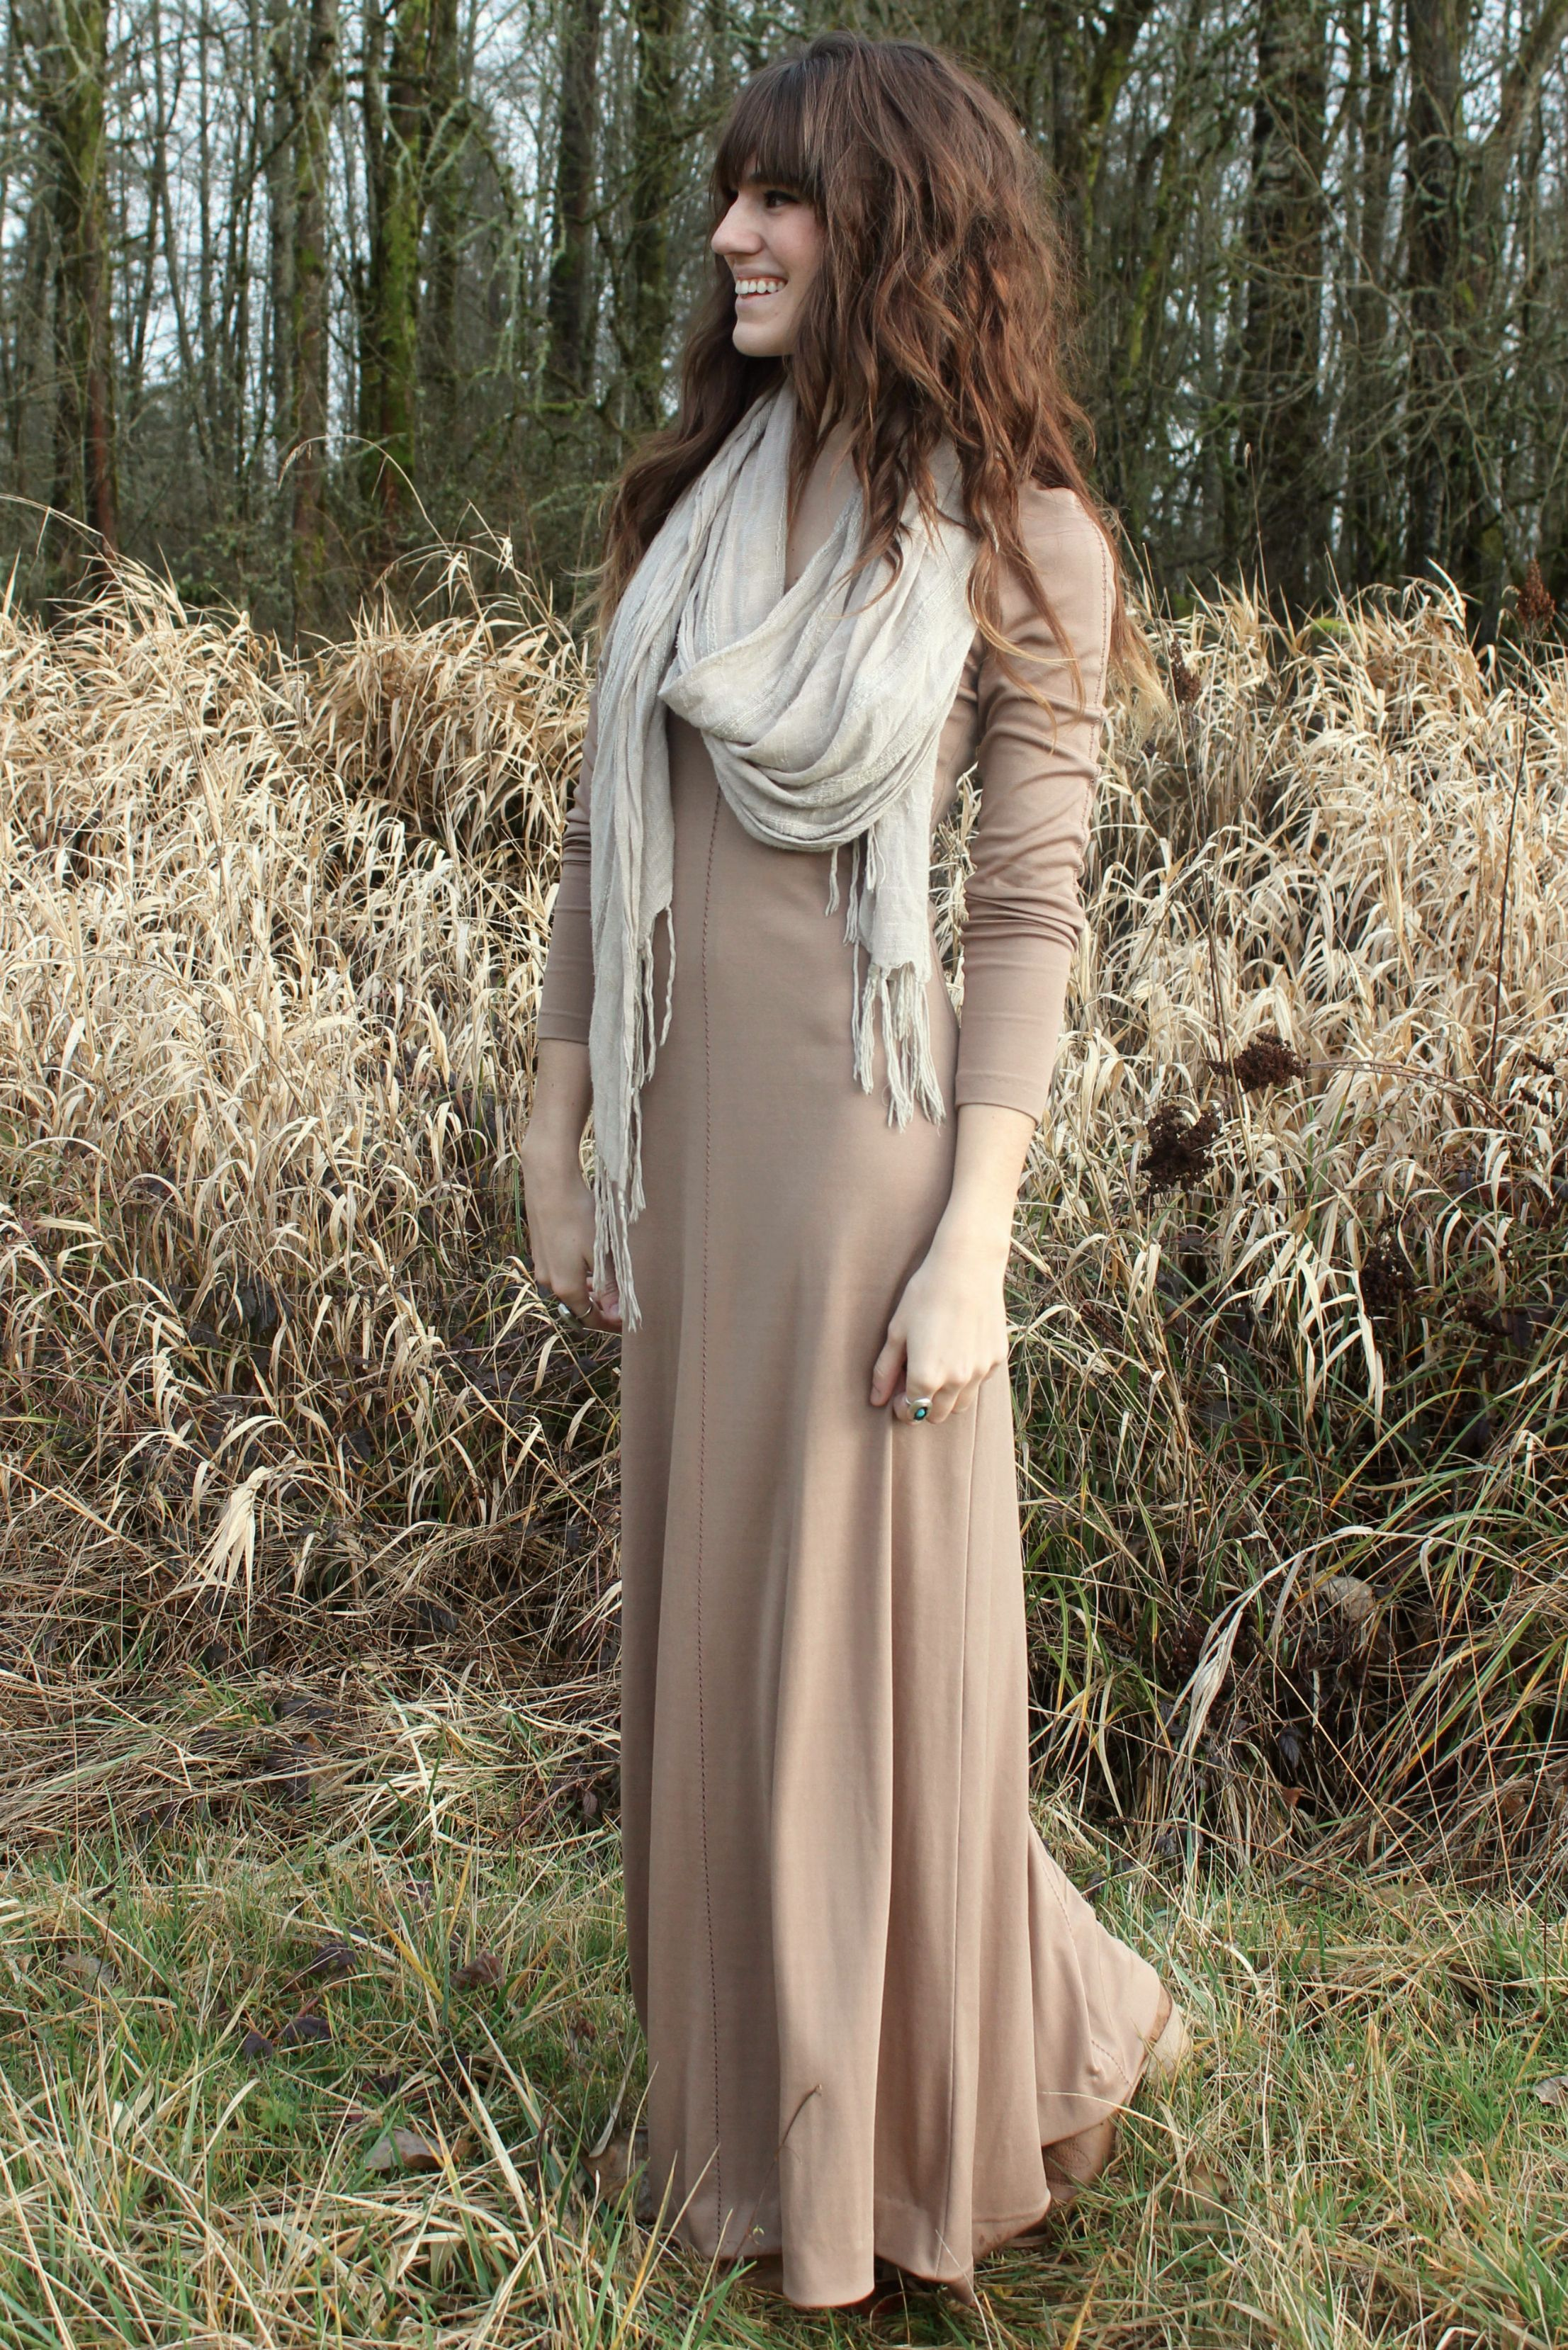 The Moptop Touch Of Grey Vintage Maxi Dress Modest Dresses Dresses [ 3317 x 2213 Pixel ]